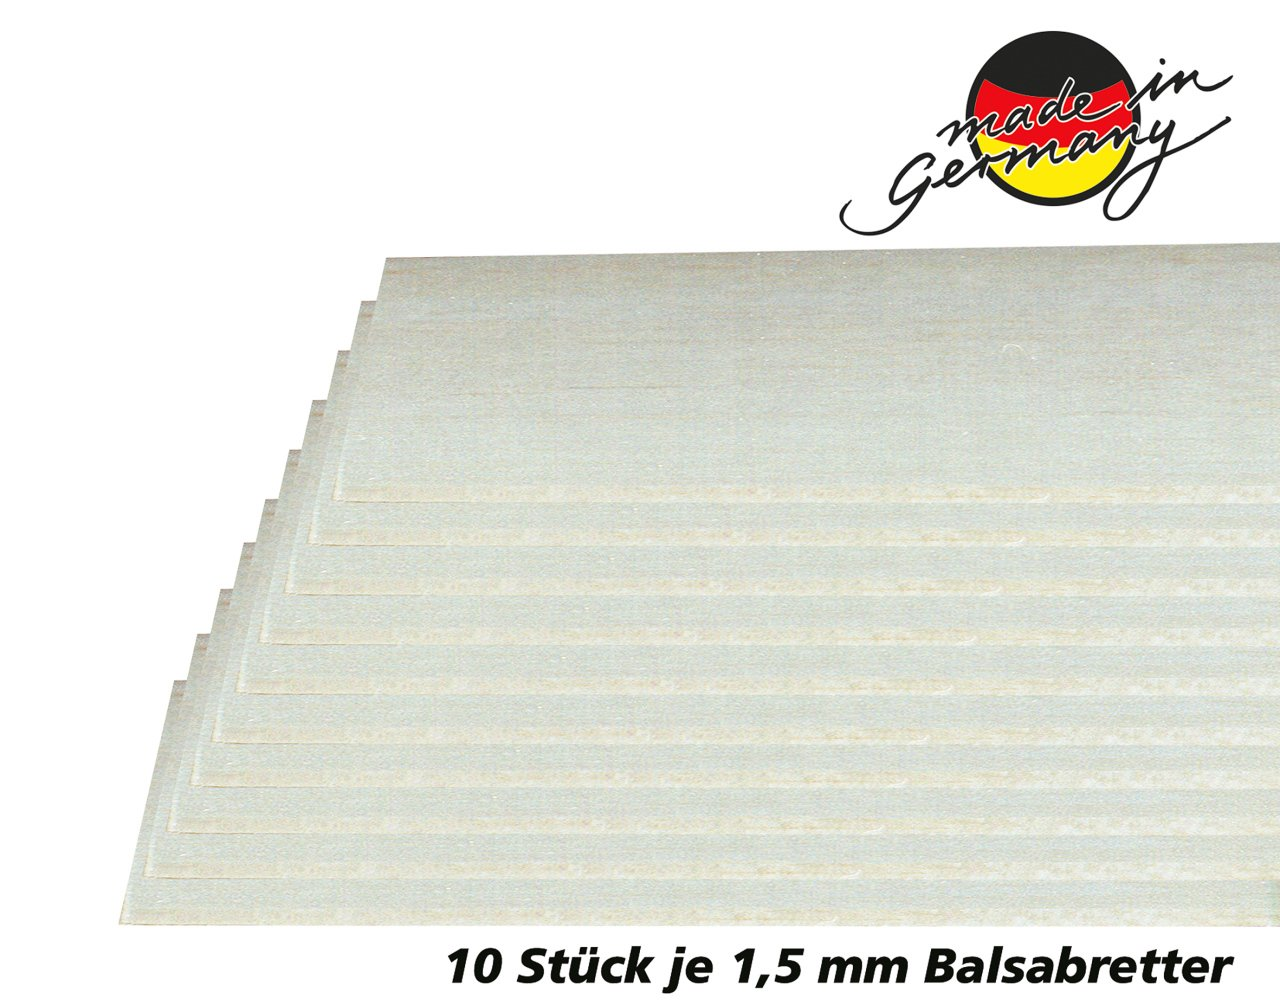 Jamara 231061 Balsa Wood for Model Building and Crafts, Brown, 1.5 x 100 x 1000 mm